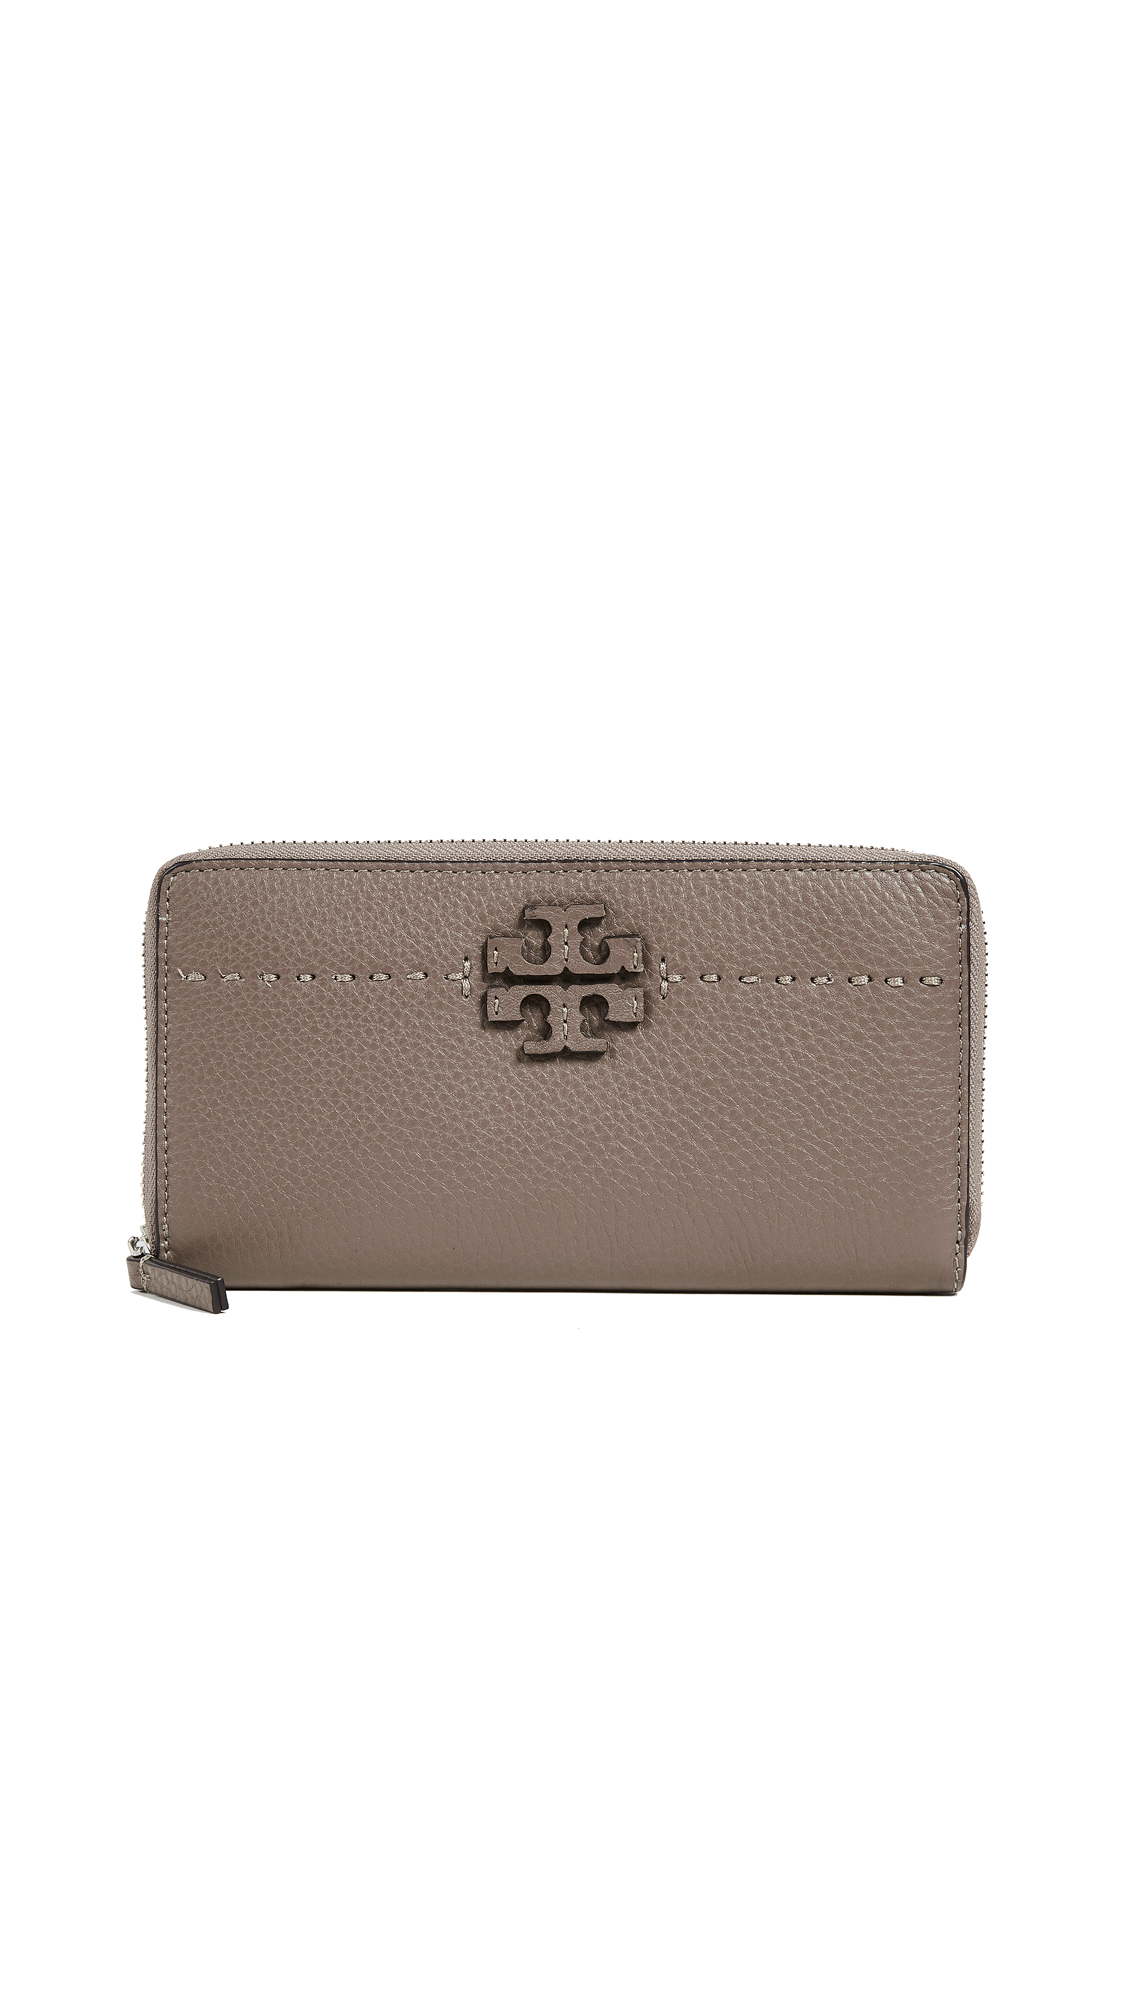 Tory Burch Mcgraw Zip Continental Wallet - Silver Maple